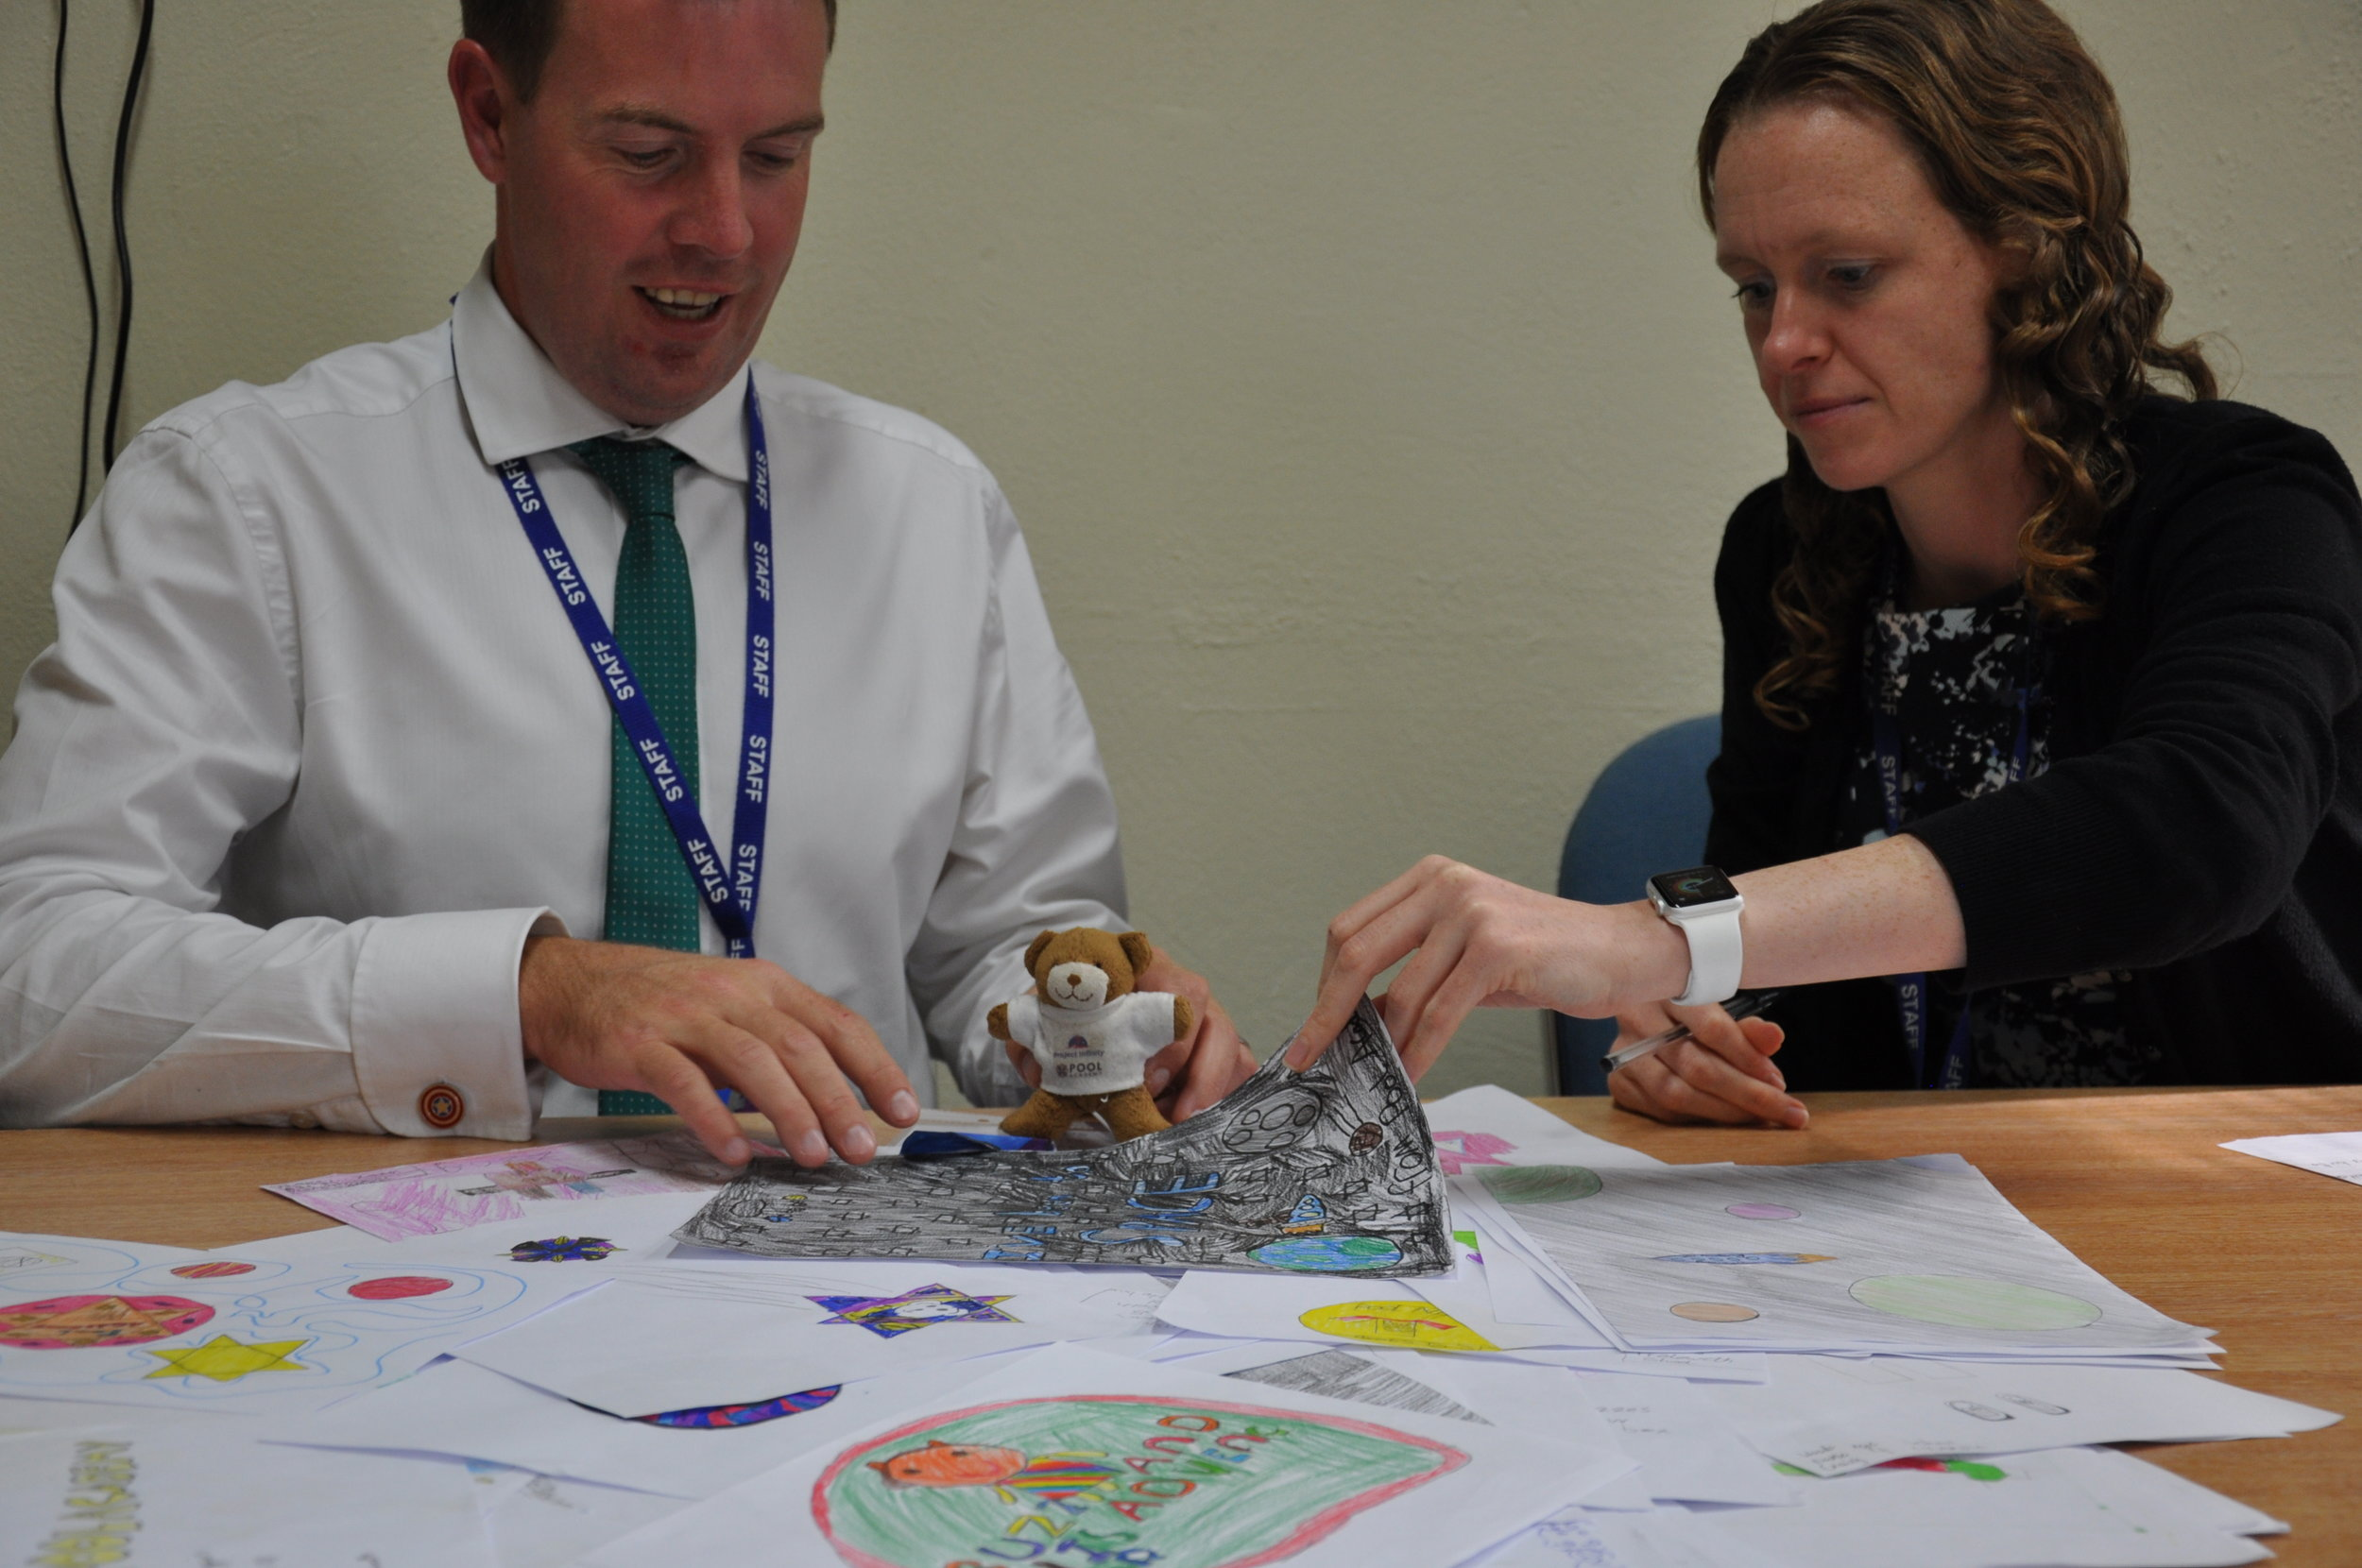 Principal Miss Meakin and Head Geek Phil helping me look through all the competition entries.